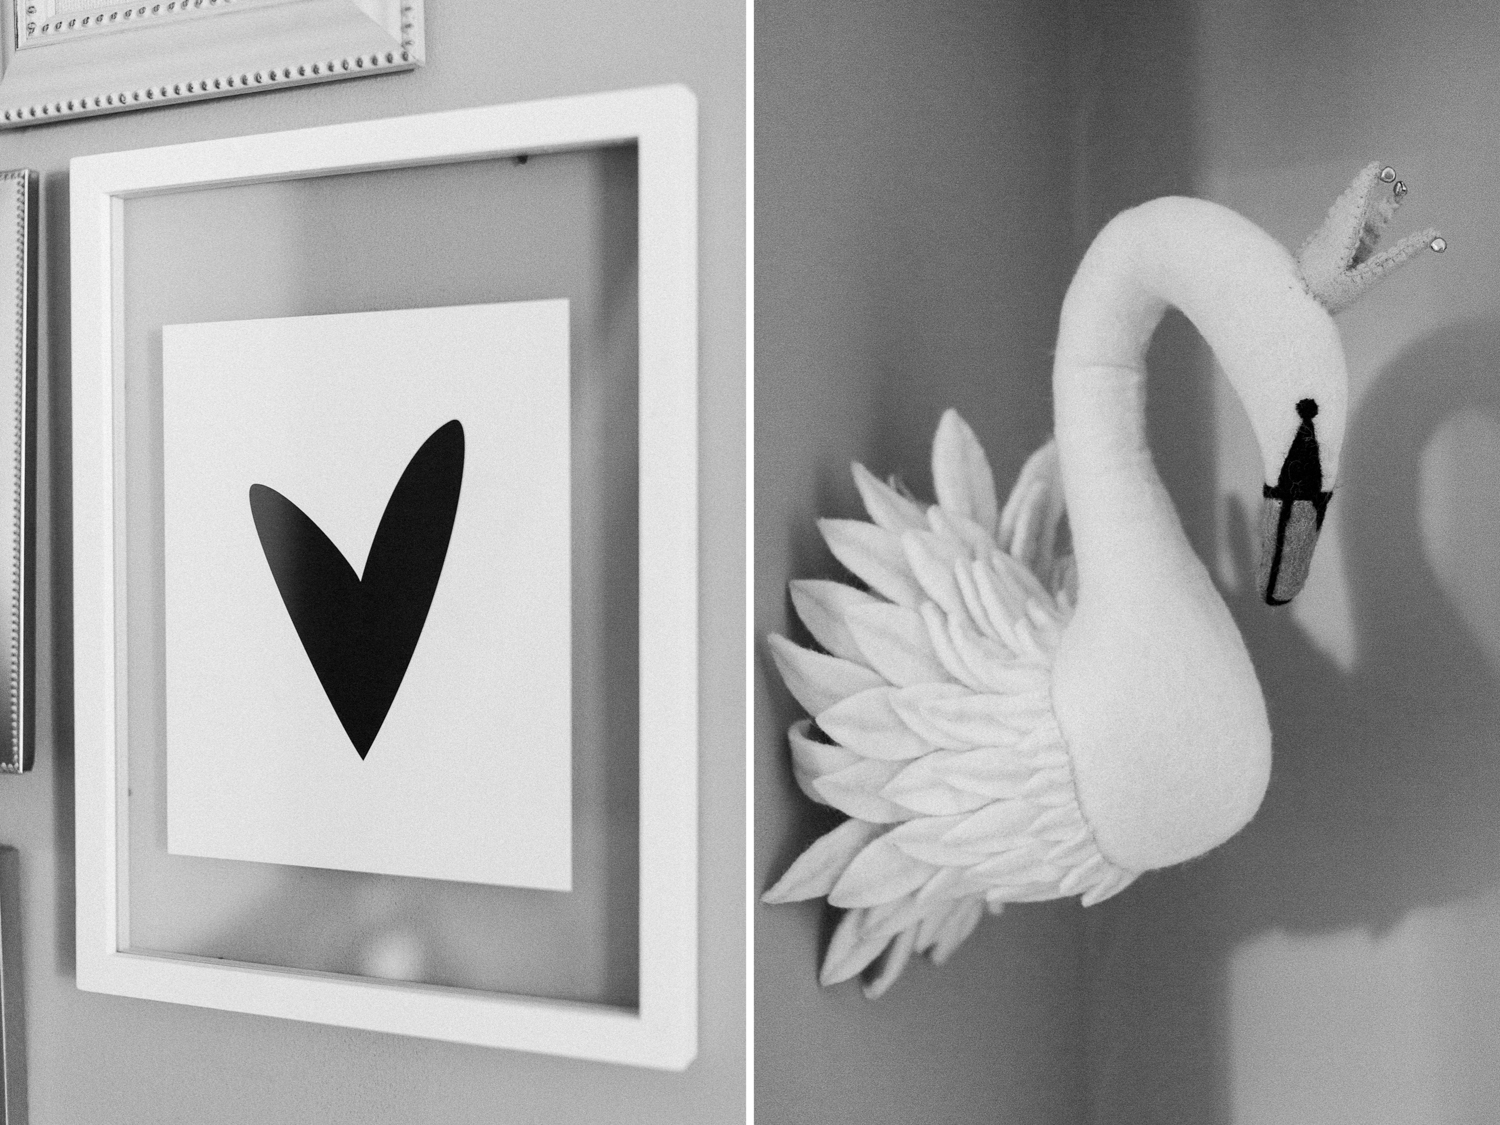 1-calgary-newborn-photography-photographer-home-bright-modern-winter-1-swan-heart-details.jpg